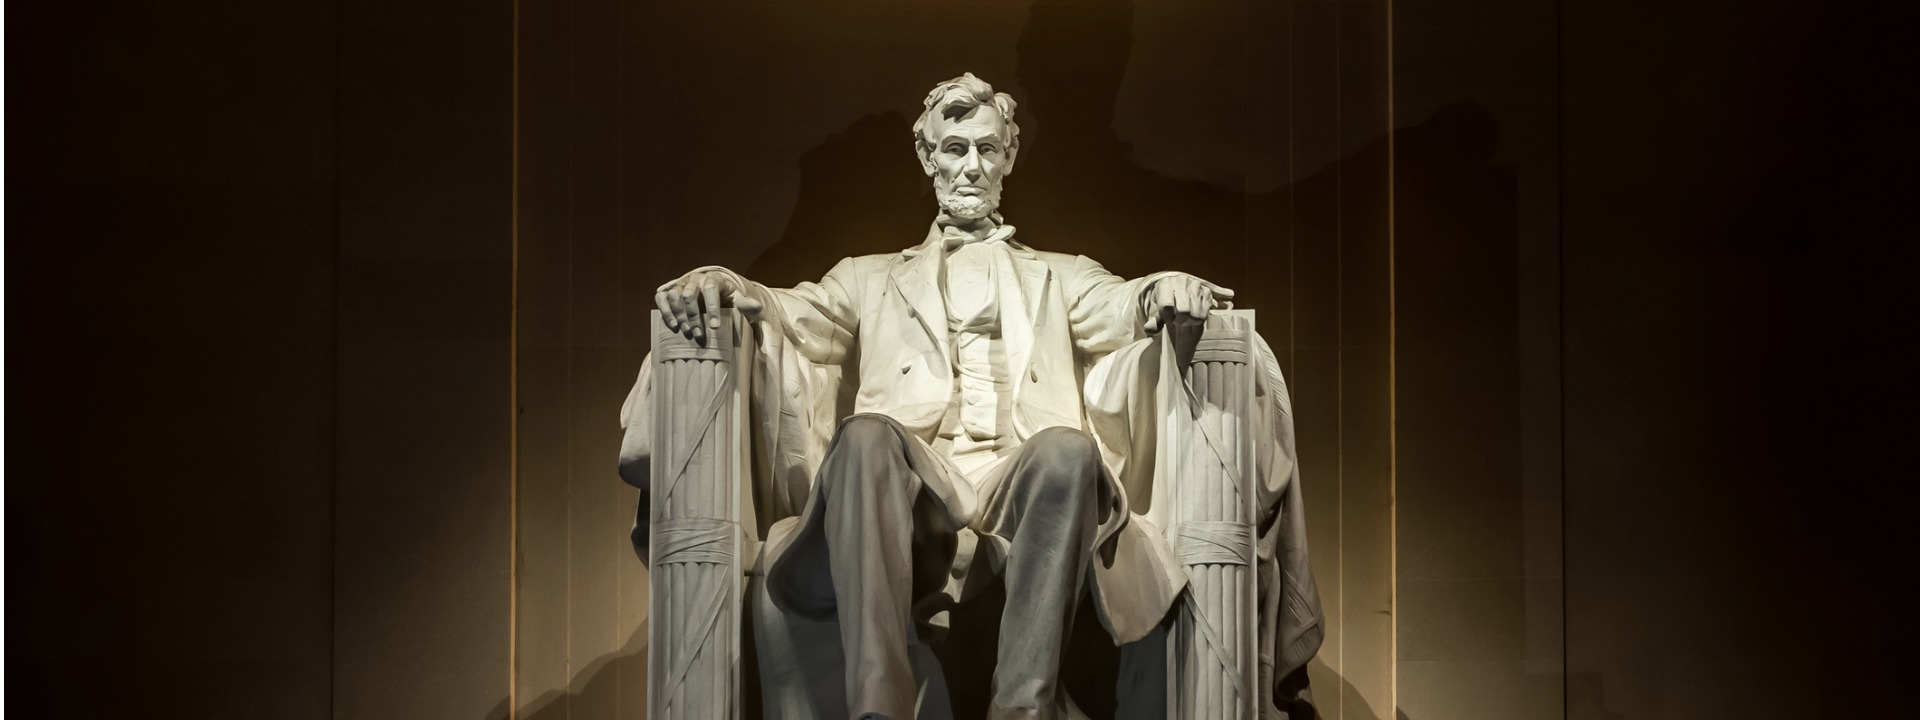 Learning from Lincoln: Leadership in a Time of Crisis